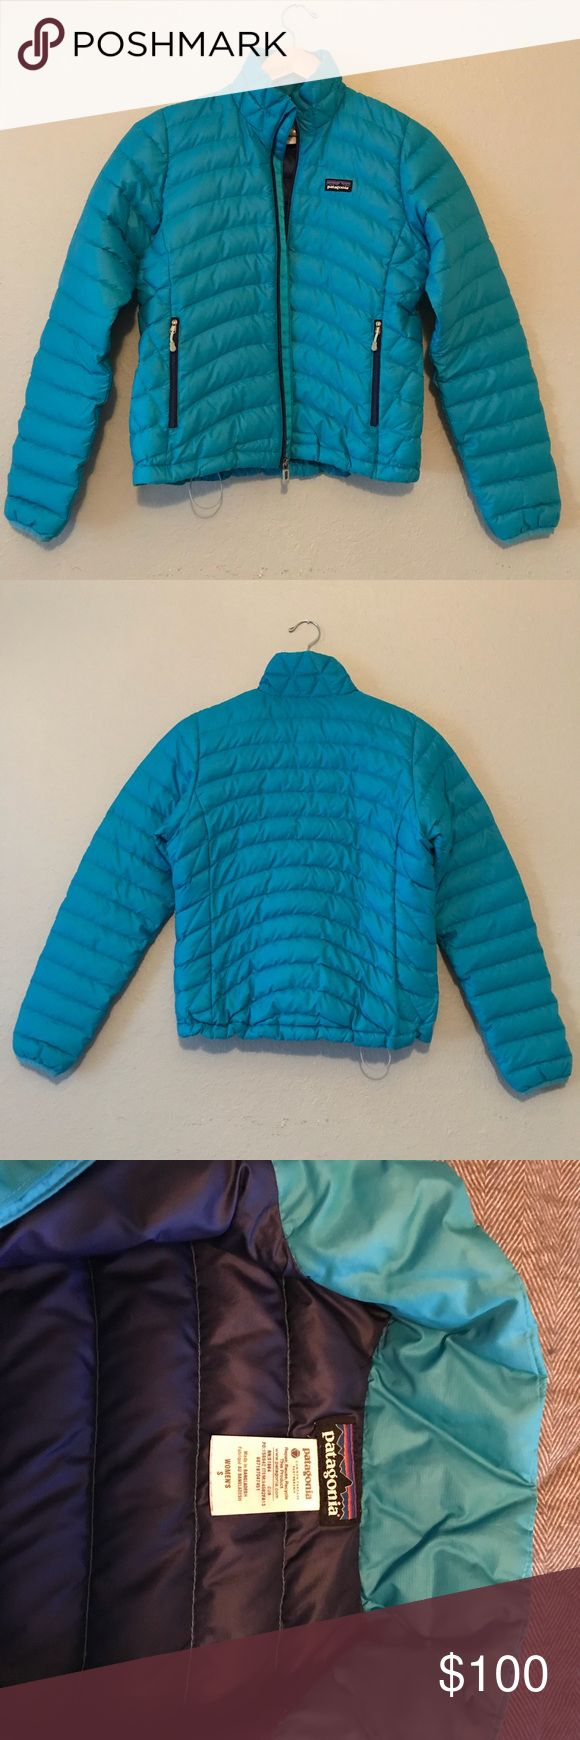 Patagonia Down Sweater Jacket Light blue Patagonia Down Sweater jacket with deep purple lining. Light weight and packable. Cozy and warm. Perfect to wear by itself on cool days or layered for colder days. In very good used condition. One barely noticeable snag shown on next to last picture. Patagonia Jackets & Coats Puffers